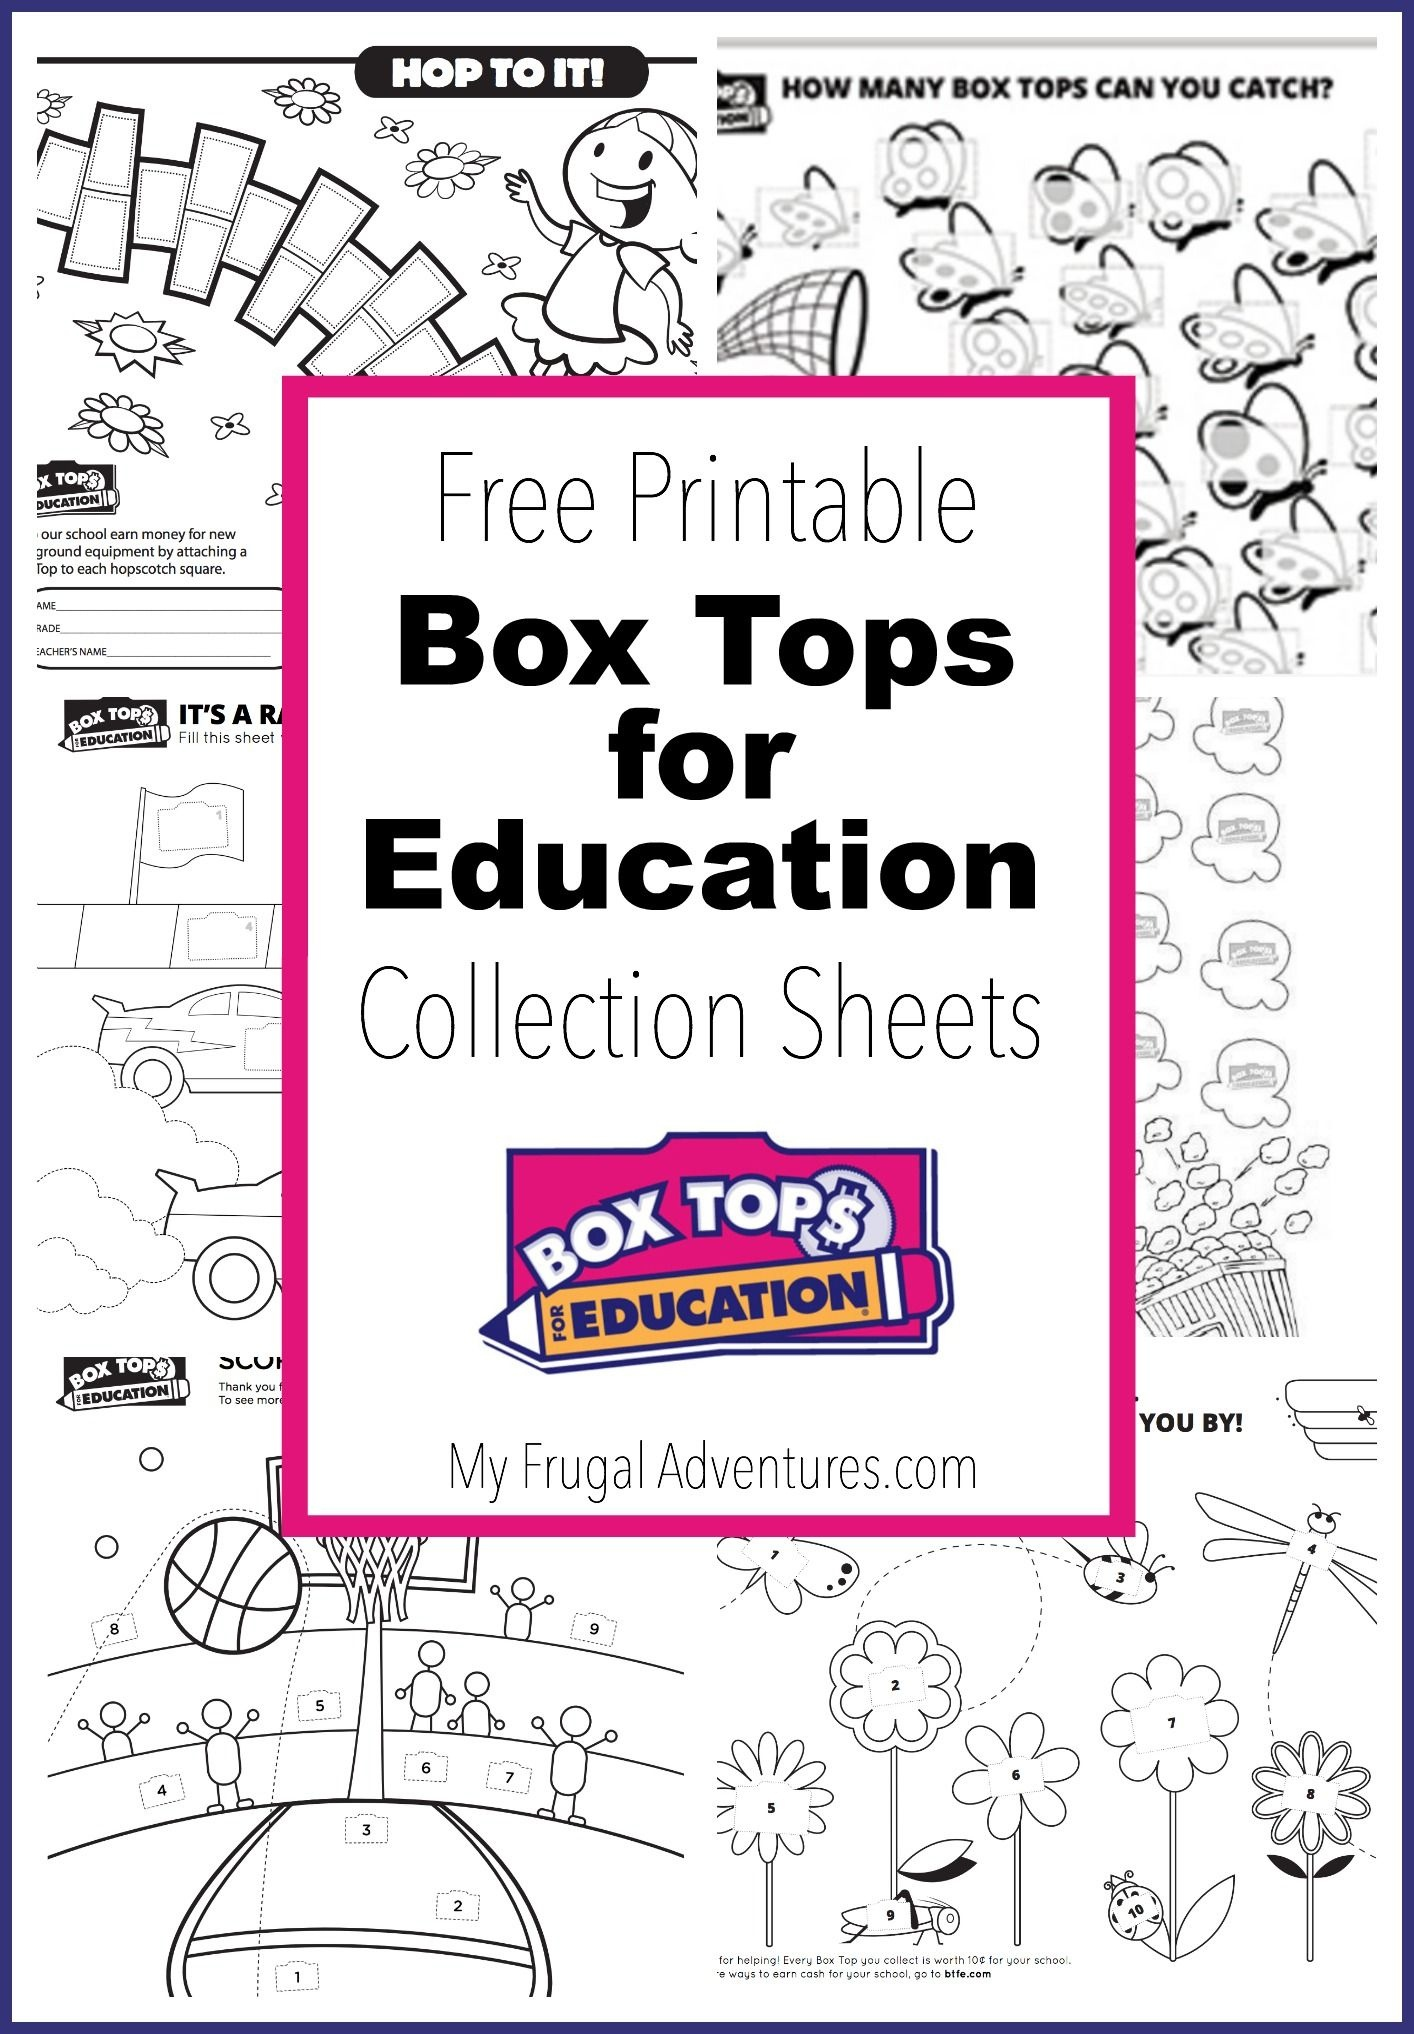 10 Printable Box Tops For Education Collection Sheets | Box Tops - Free Printable Box Tops For Education